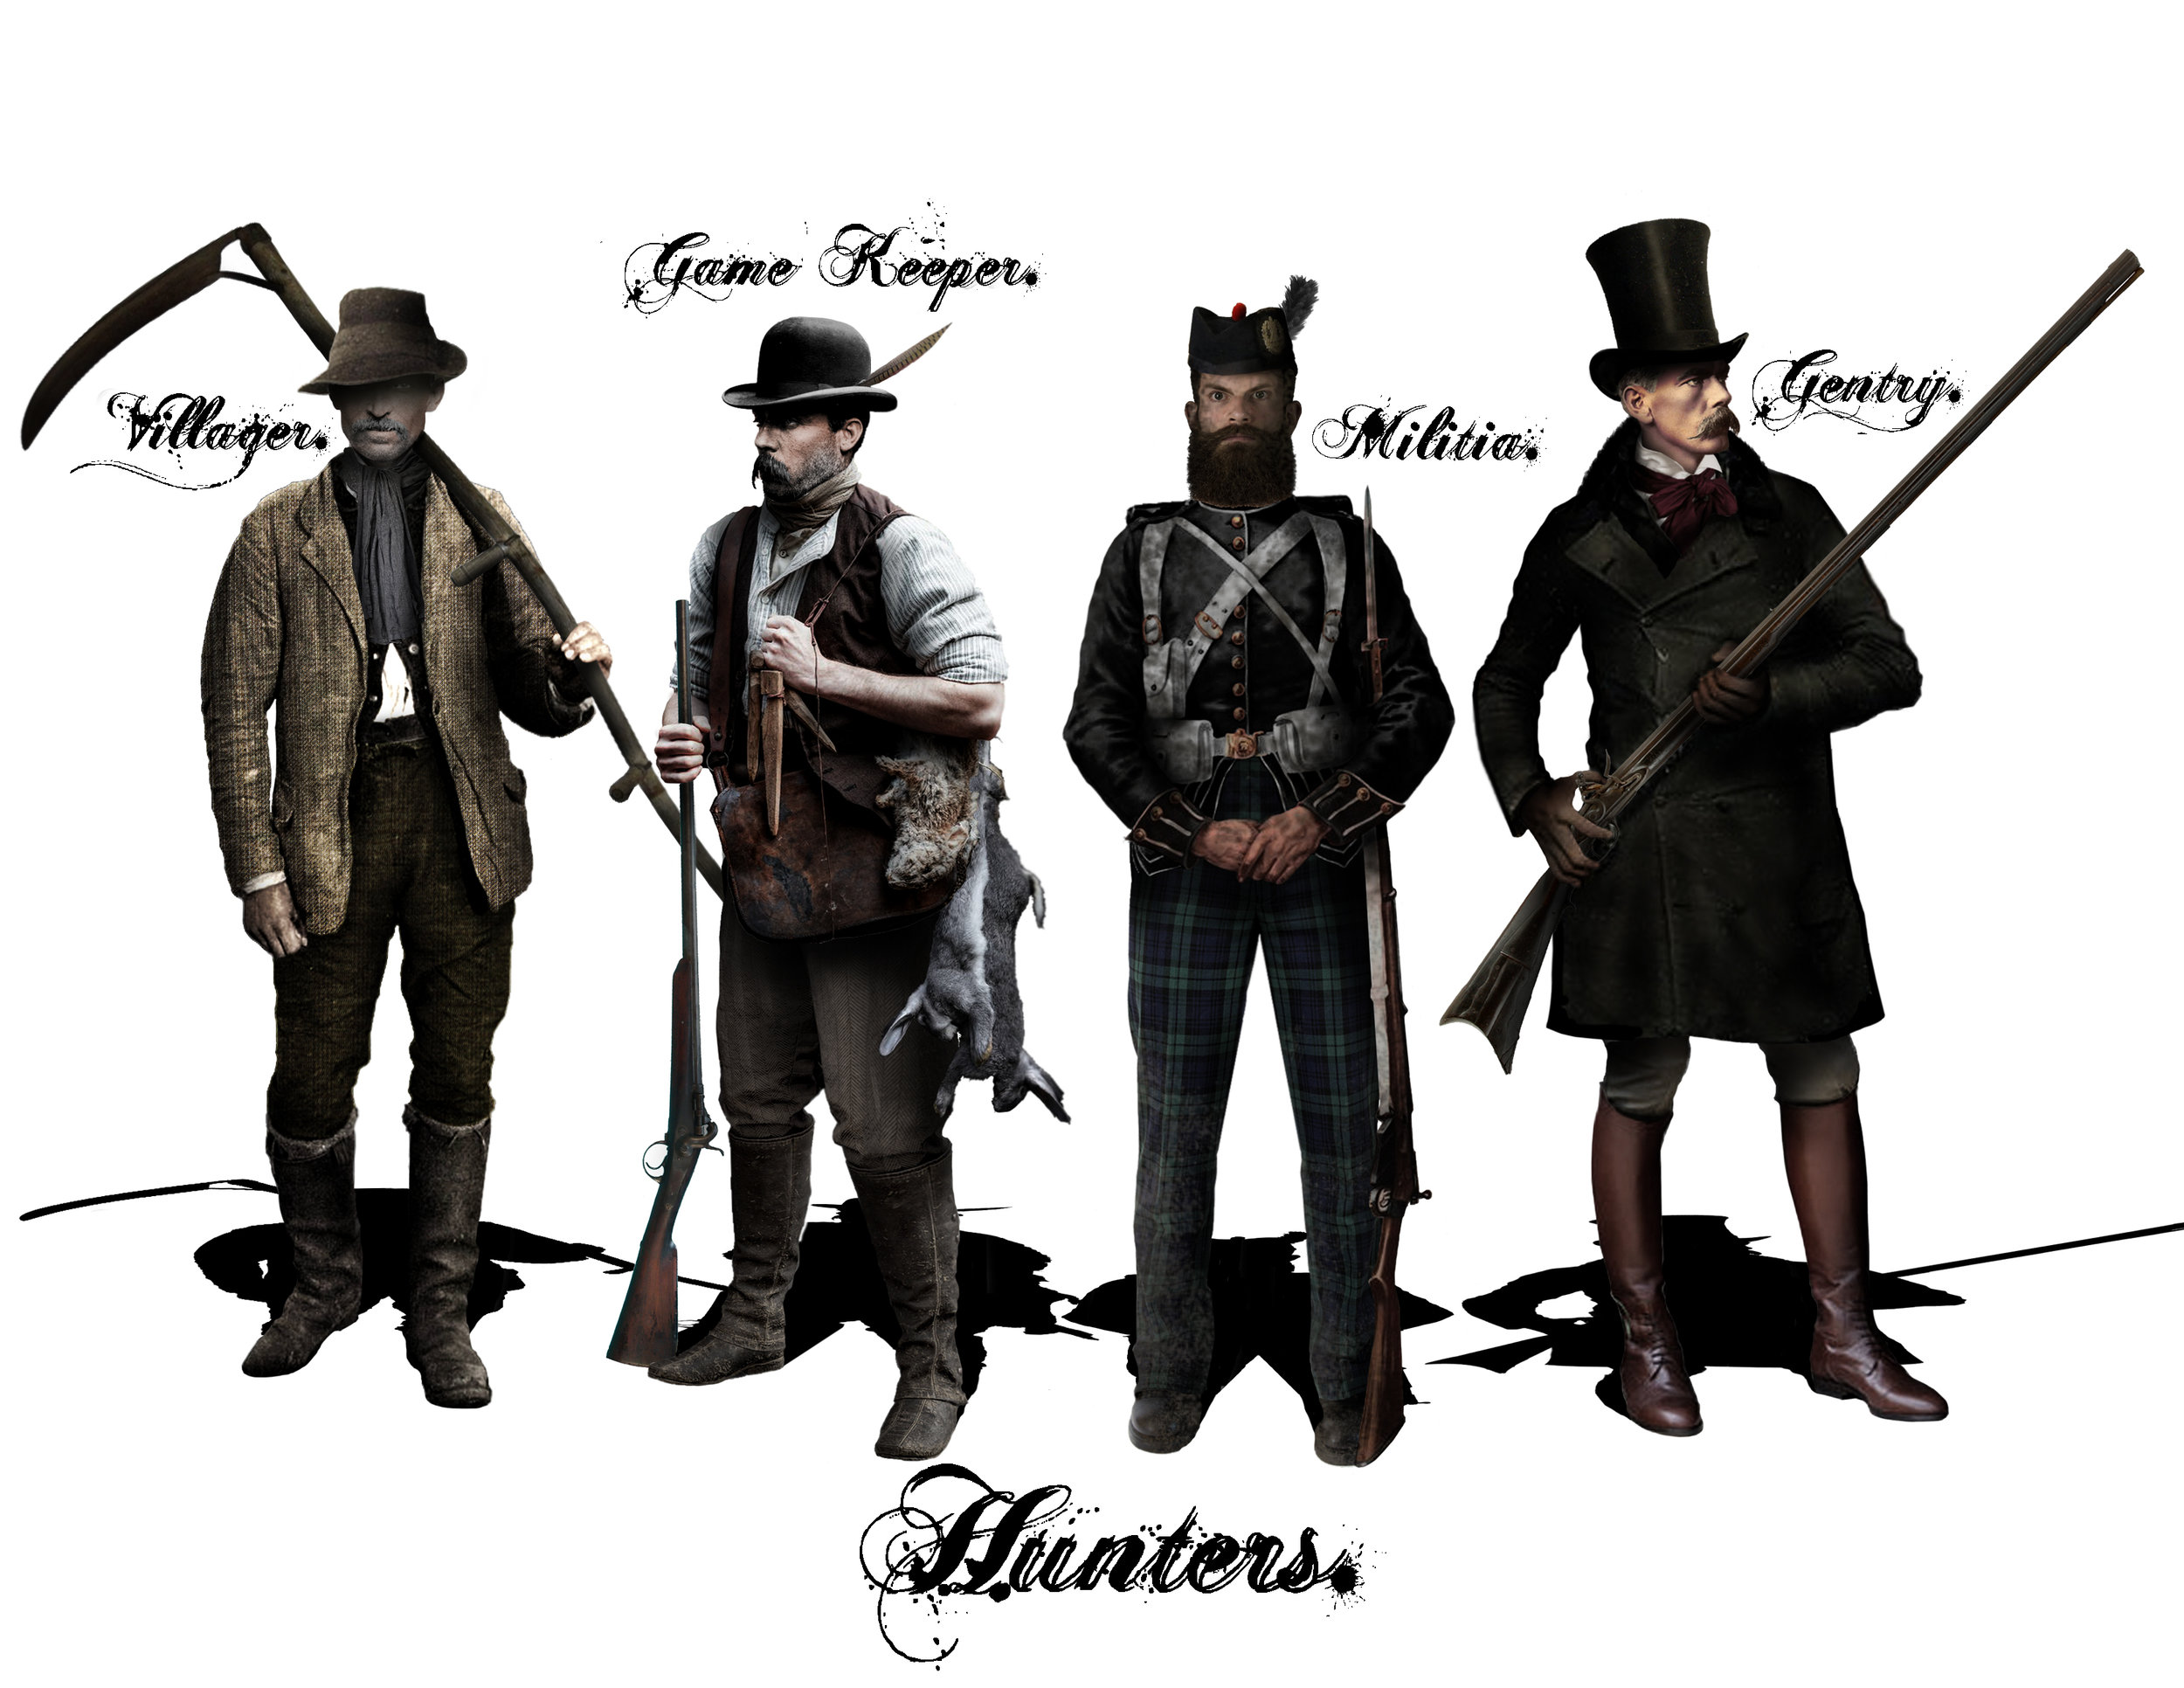 HUNTERS - Costume Design